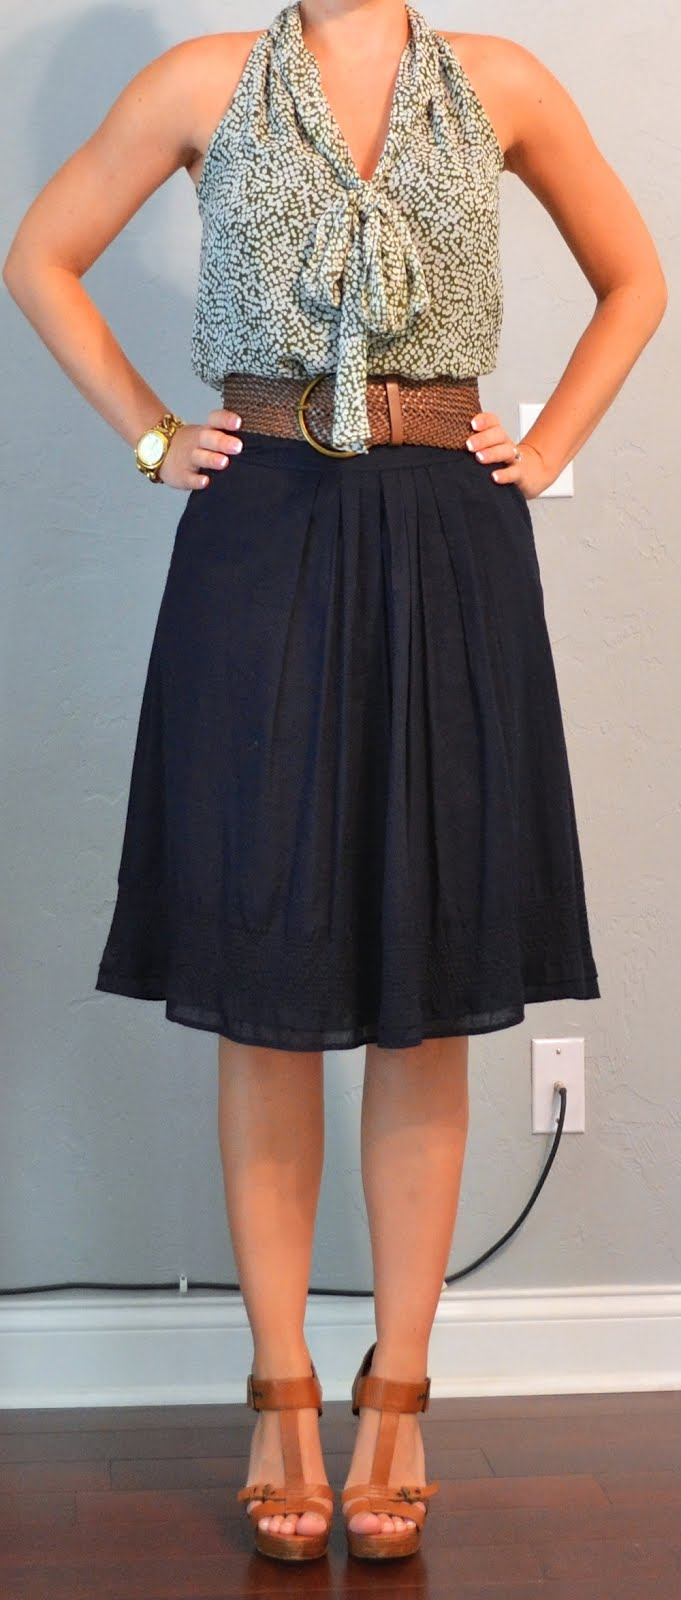 Find great deals on eBay for navy a line skirt. Shop with confidence.